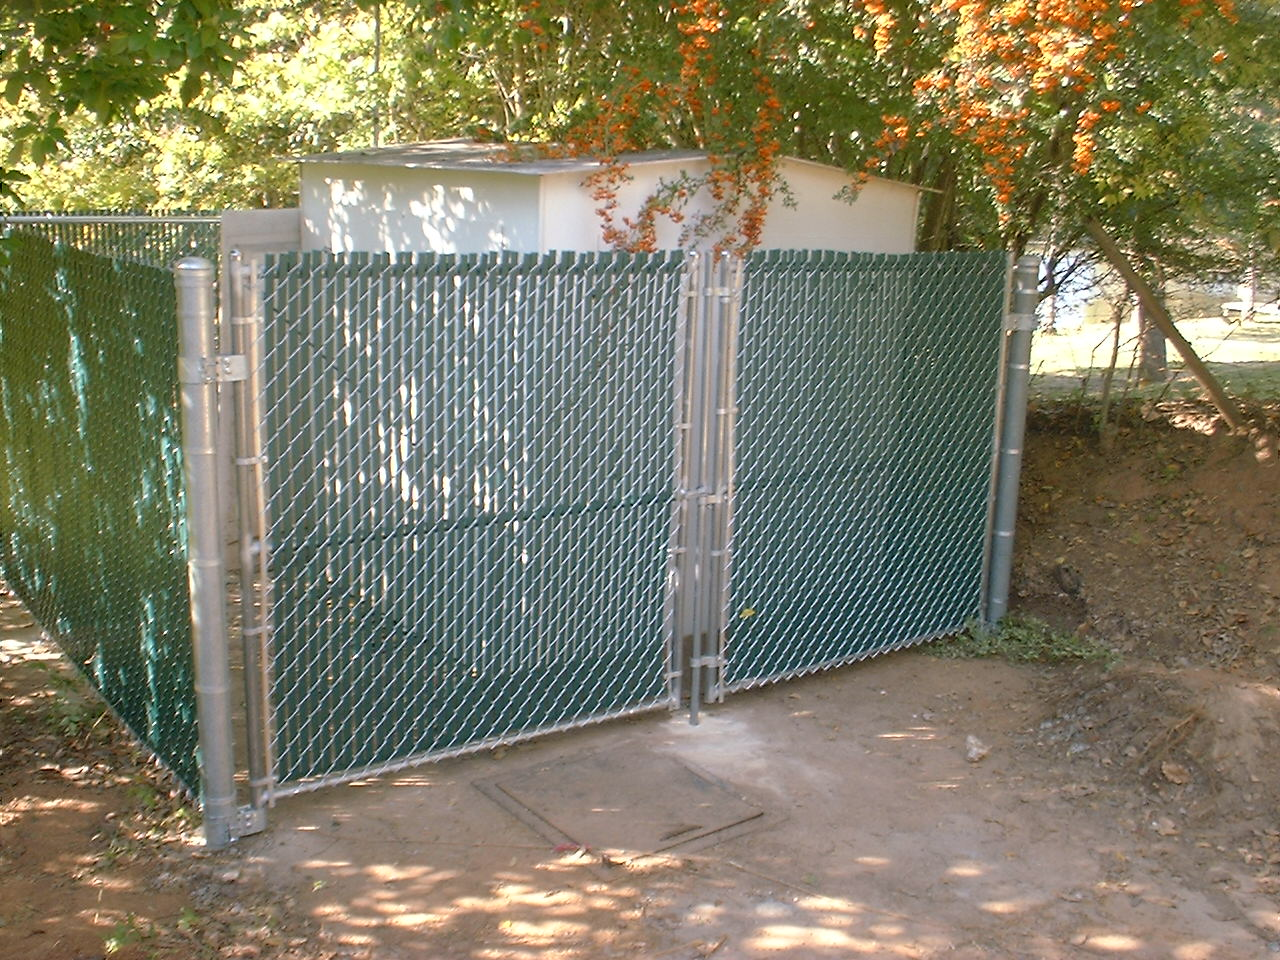 Bayonne 39 s fencing in natchitoches la 71457 - Reparation telephone bayonne ...